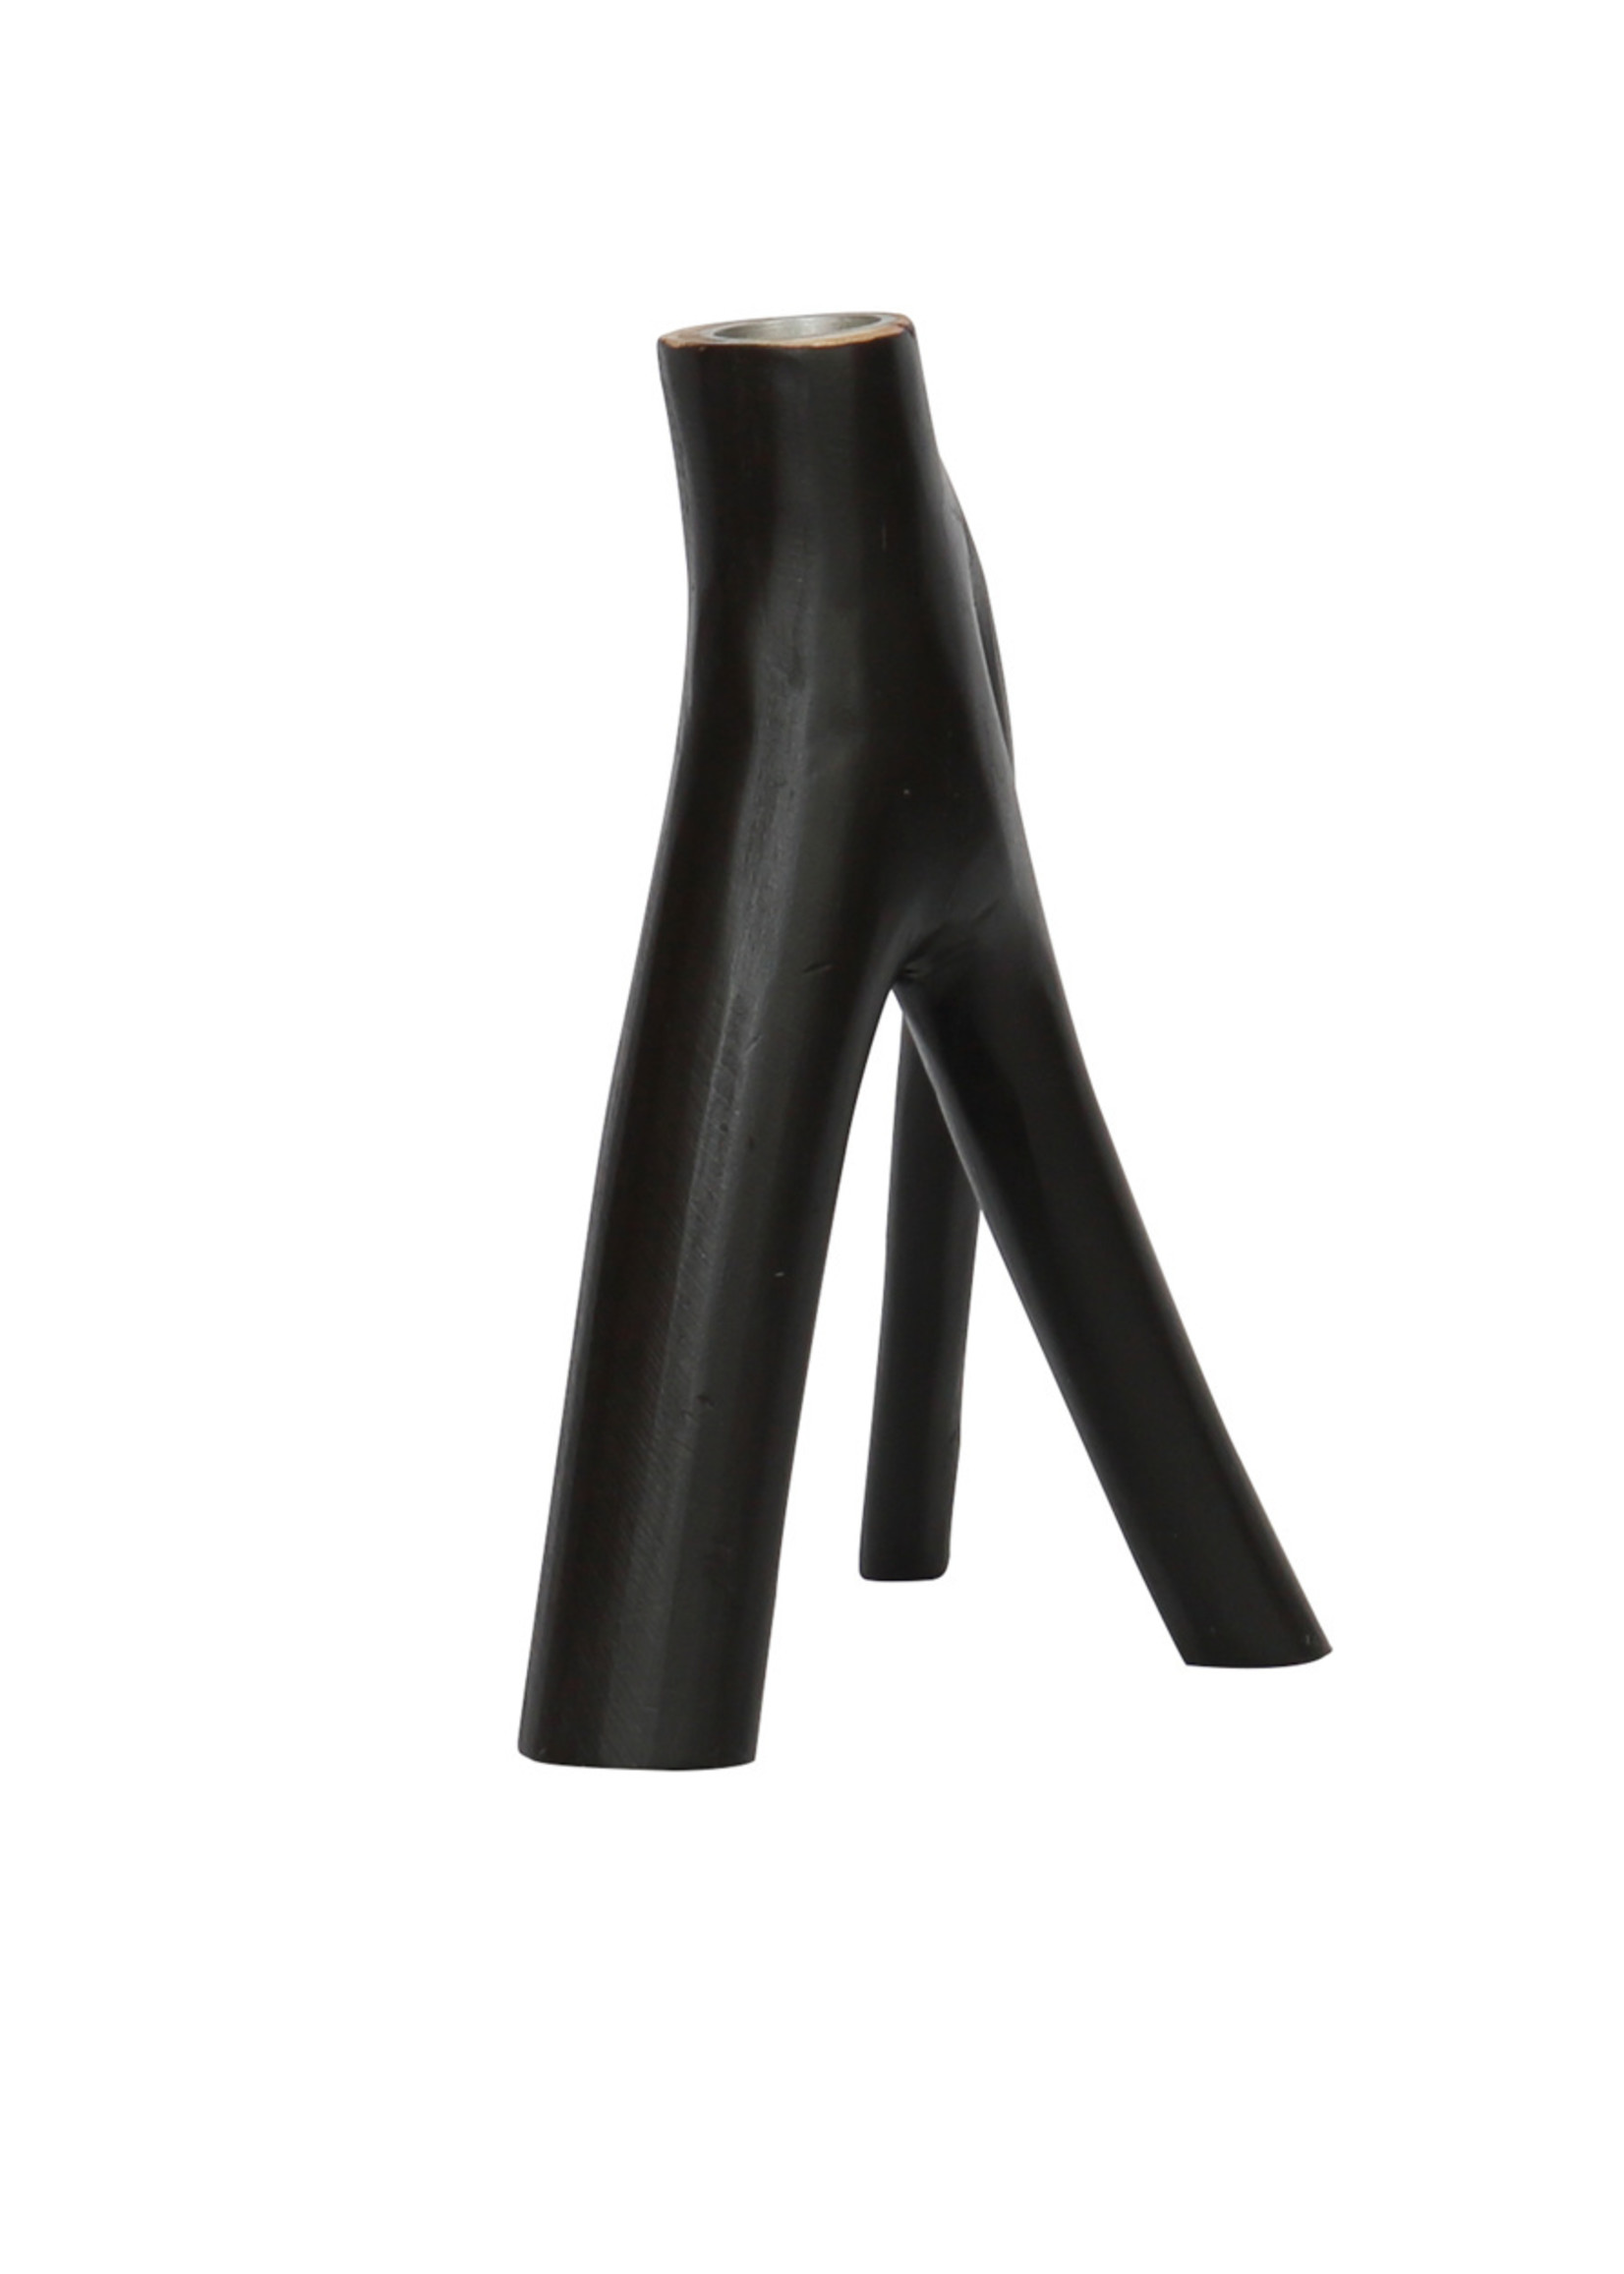 The Triple Twig Candle Holder - Black